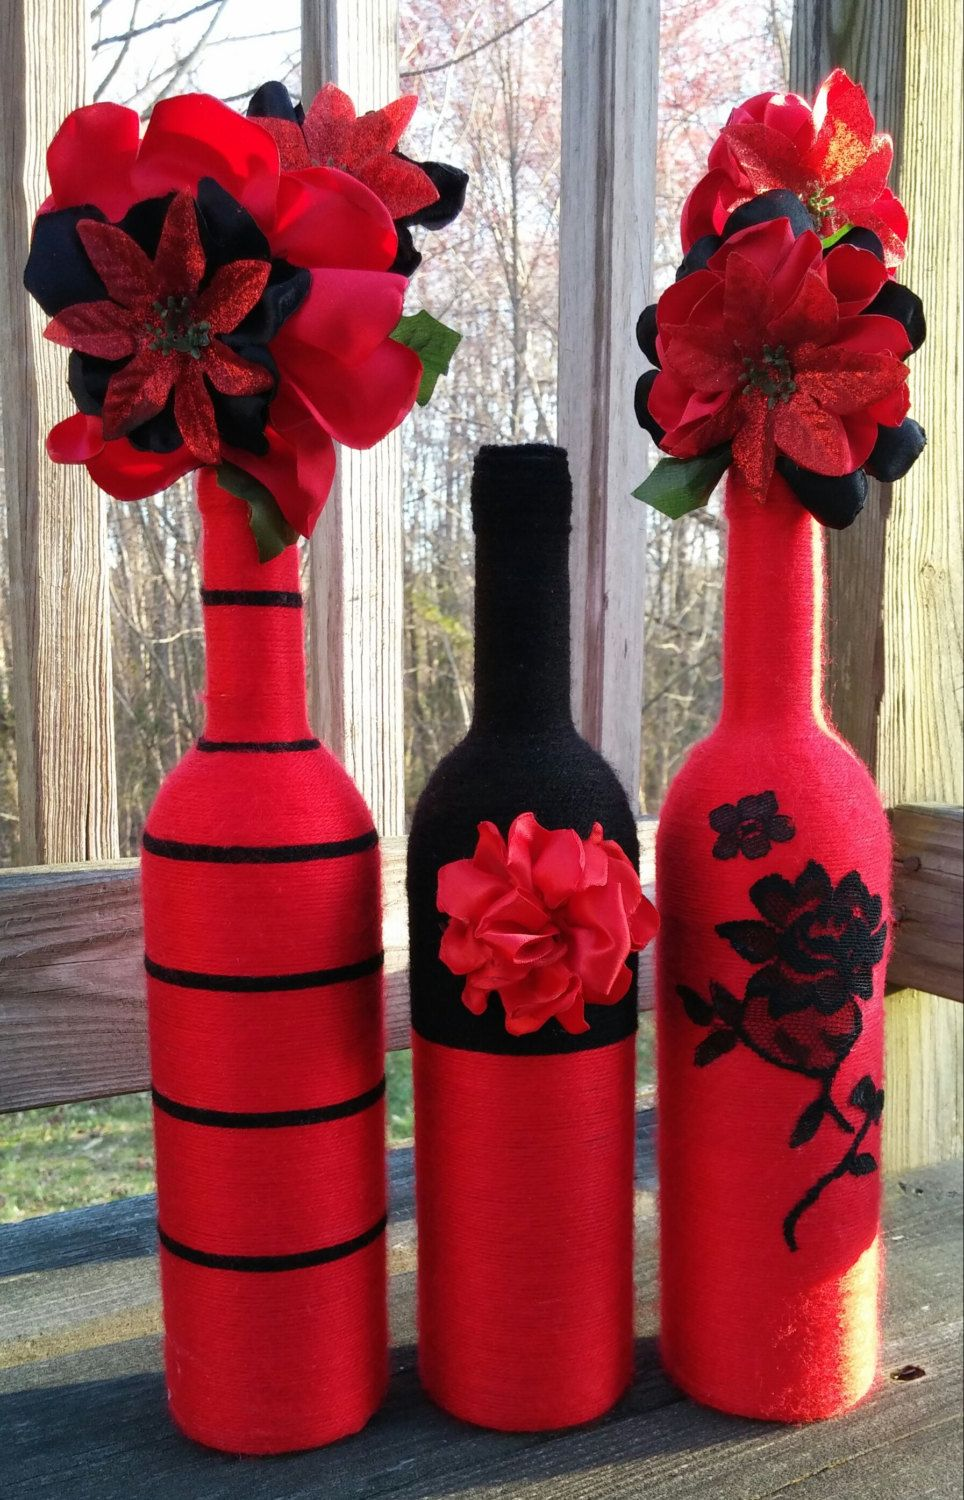 Yarn Bottles Red Vase Set Flower Vases Centerpieces Home Decor